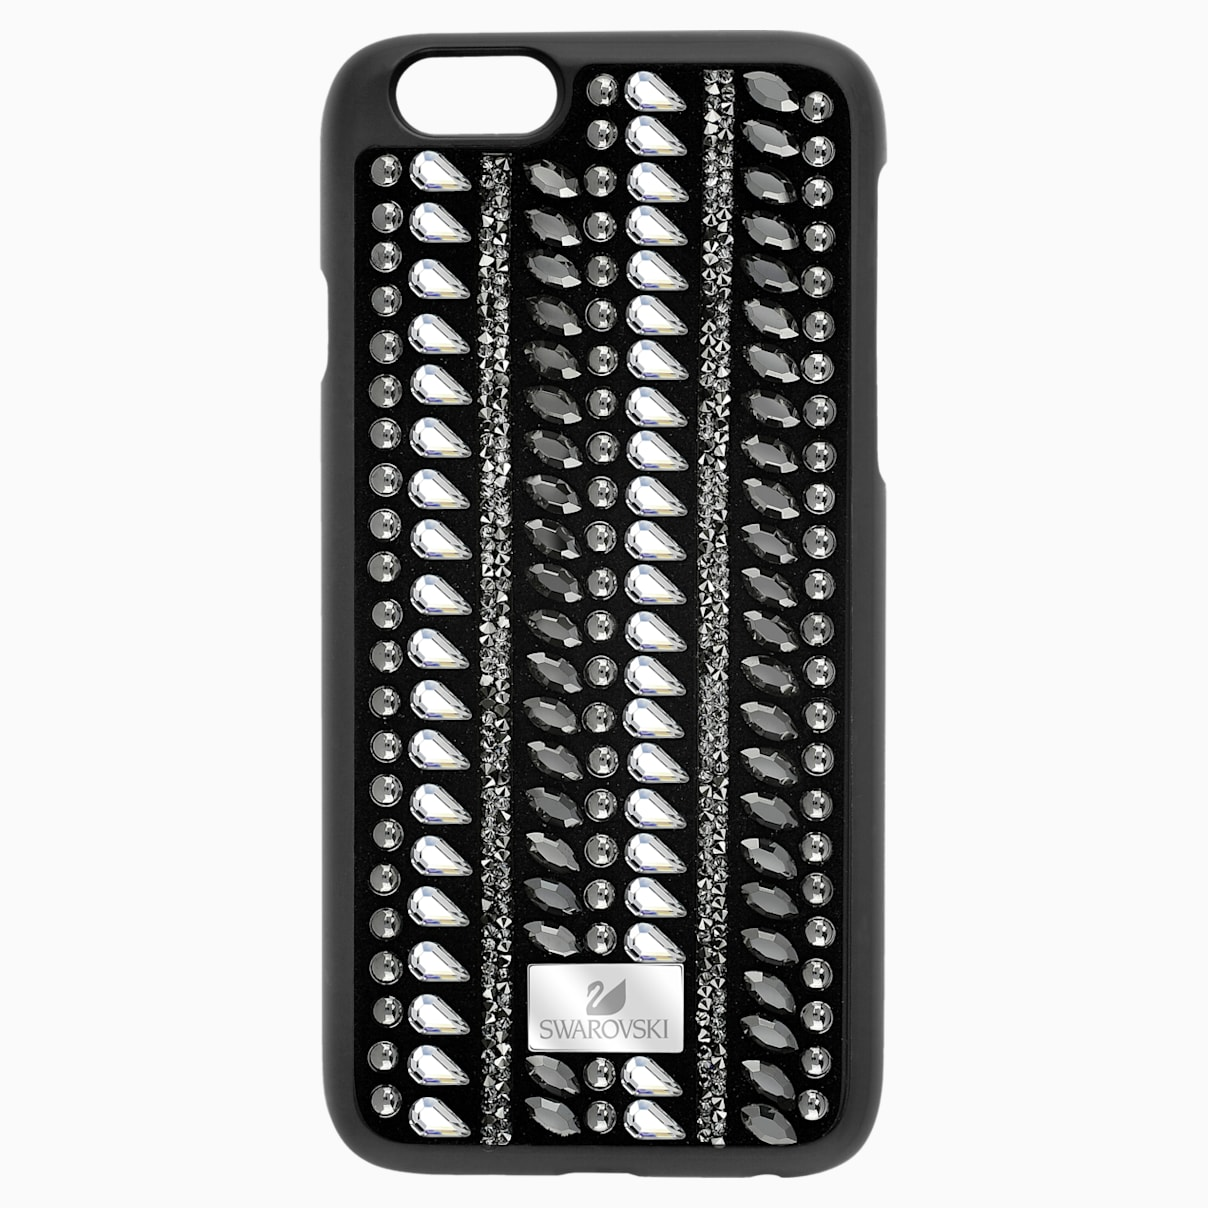 Slake Pulse Rock Custodia rigida per smartphone, iPhone® 7